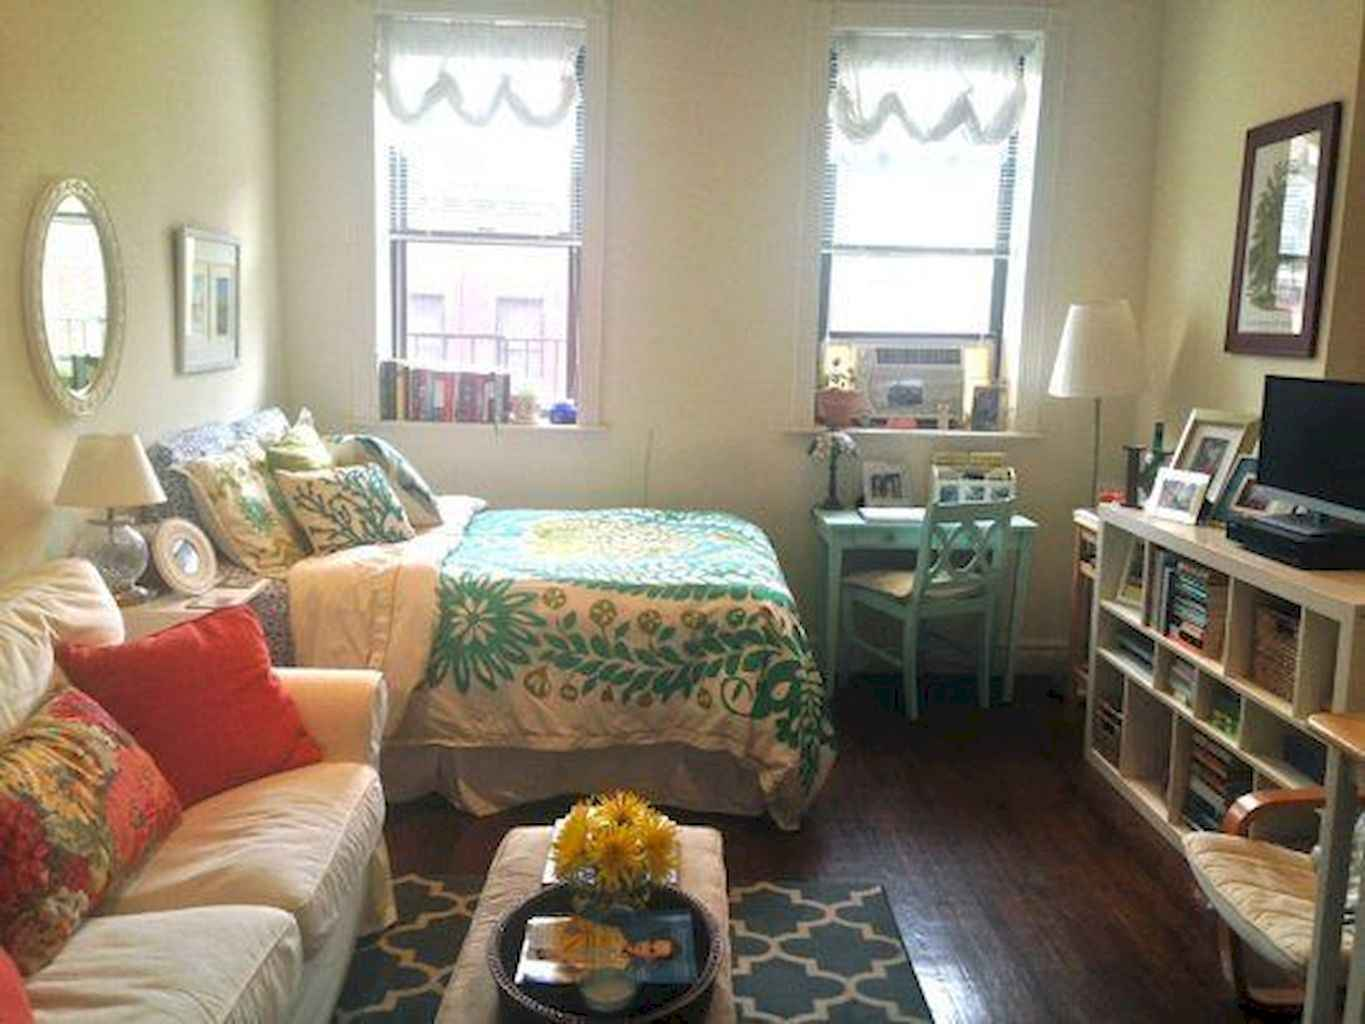 Clever college apartment decorating ideas on a budget (31)